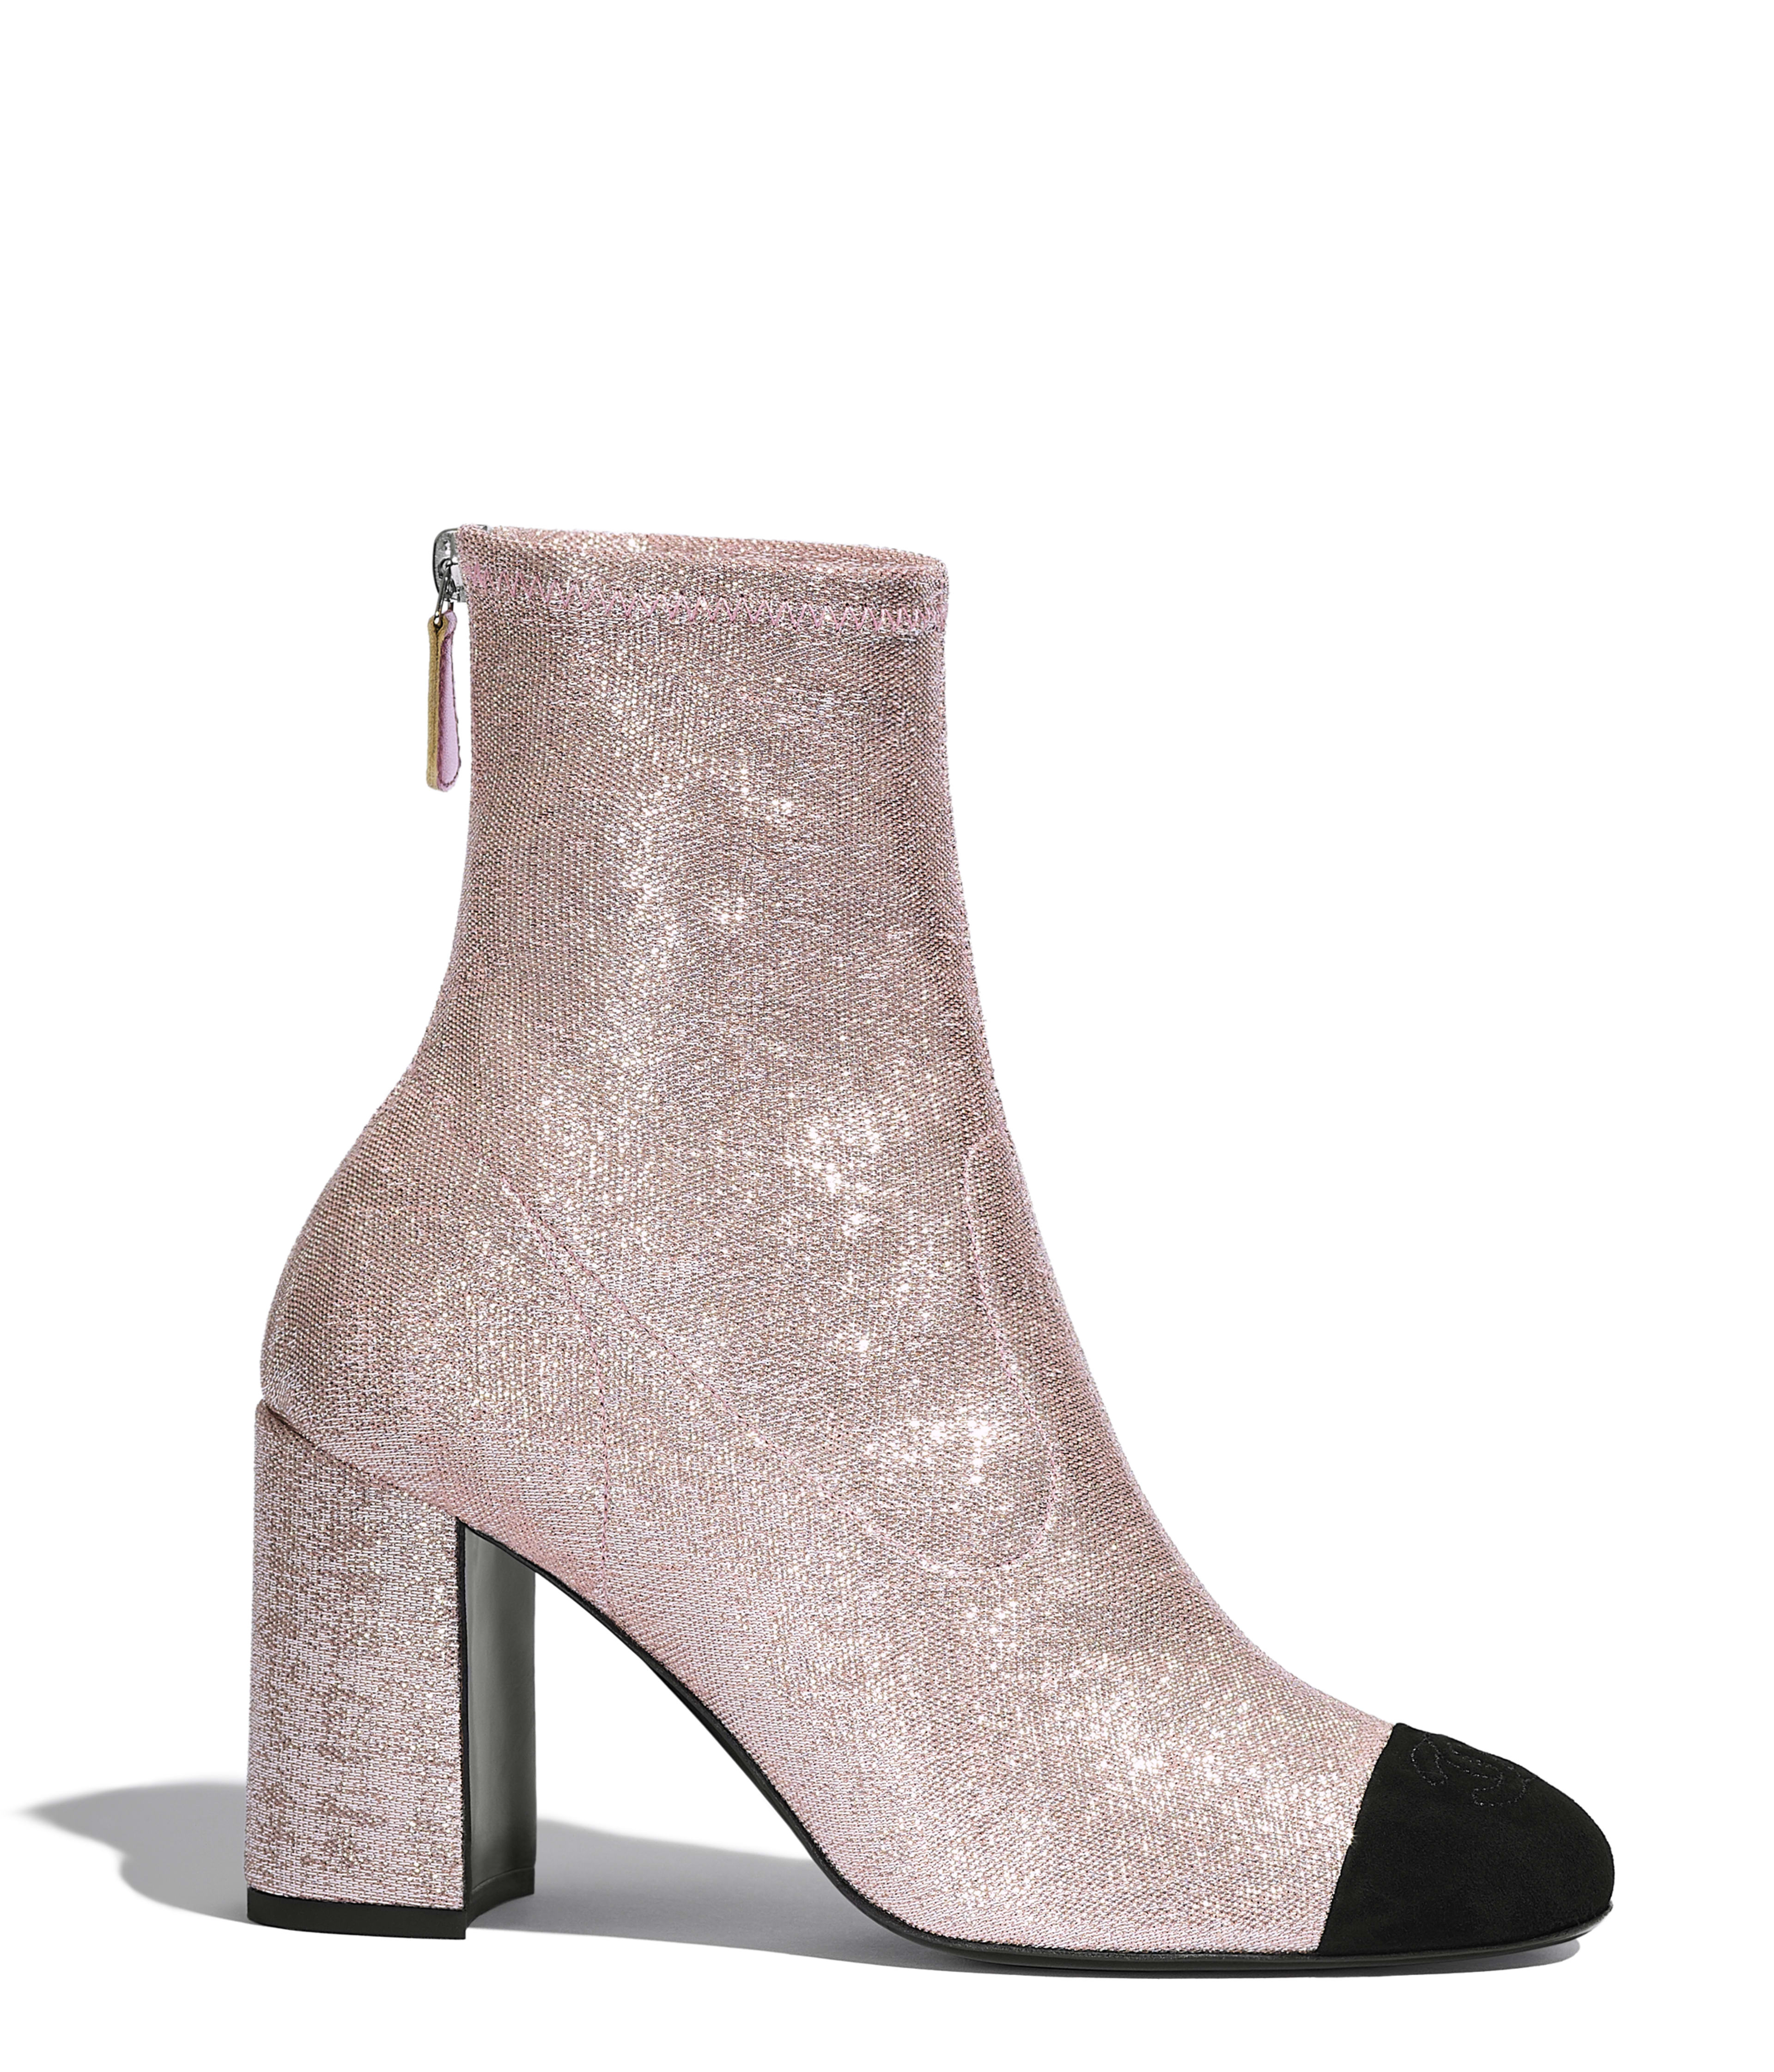 Short Boots - Shoes - Fashion | CHANEL